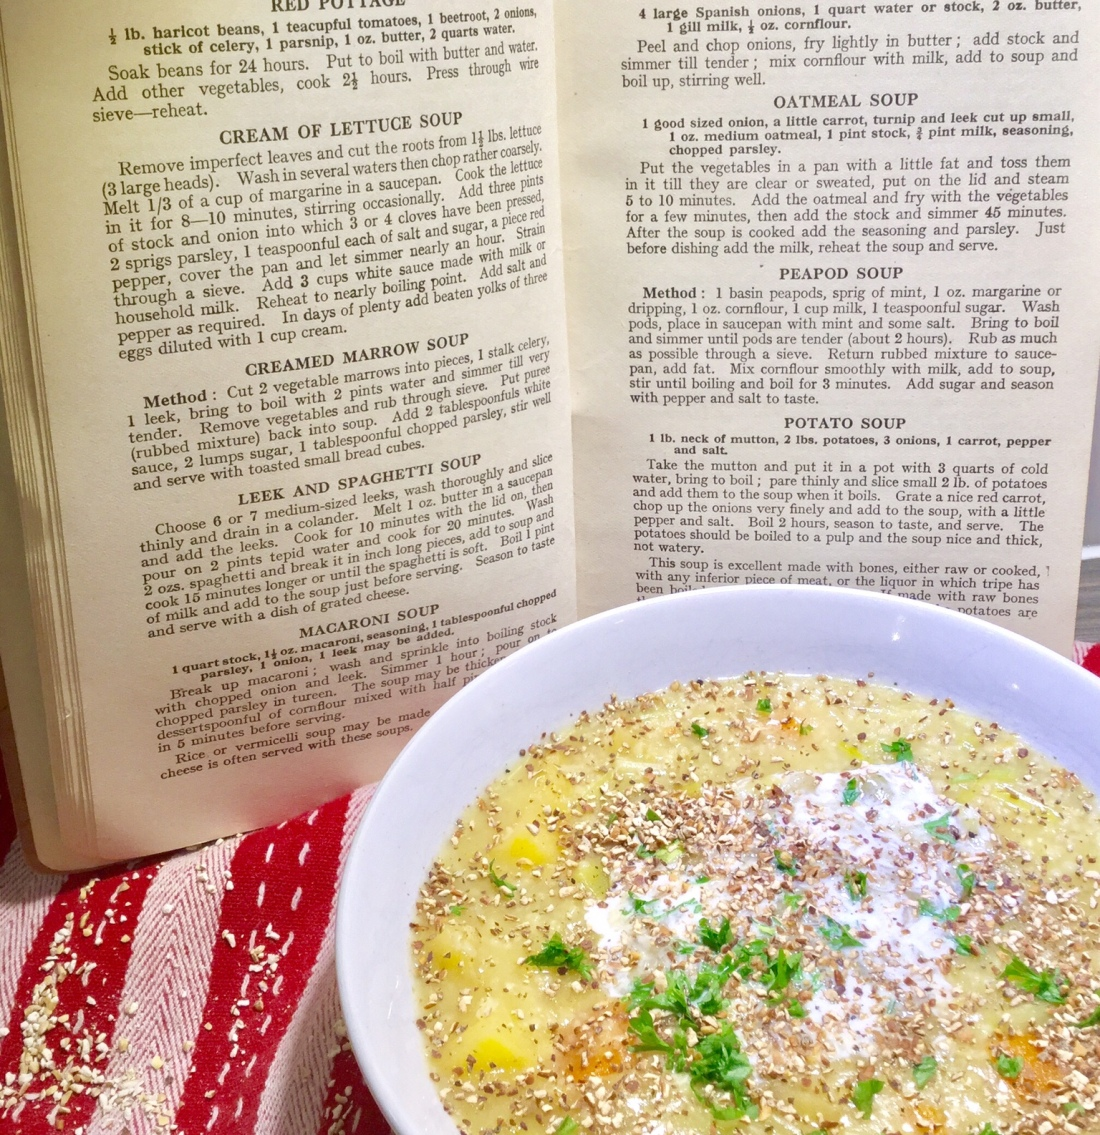 A bowl of oatmeal soup and a recipe book